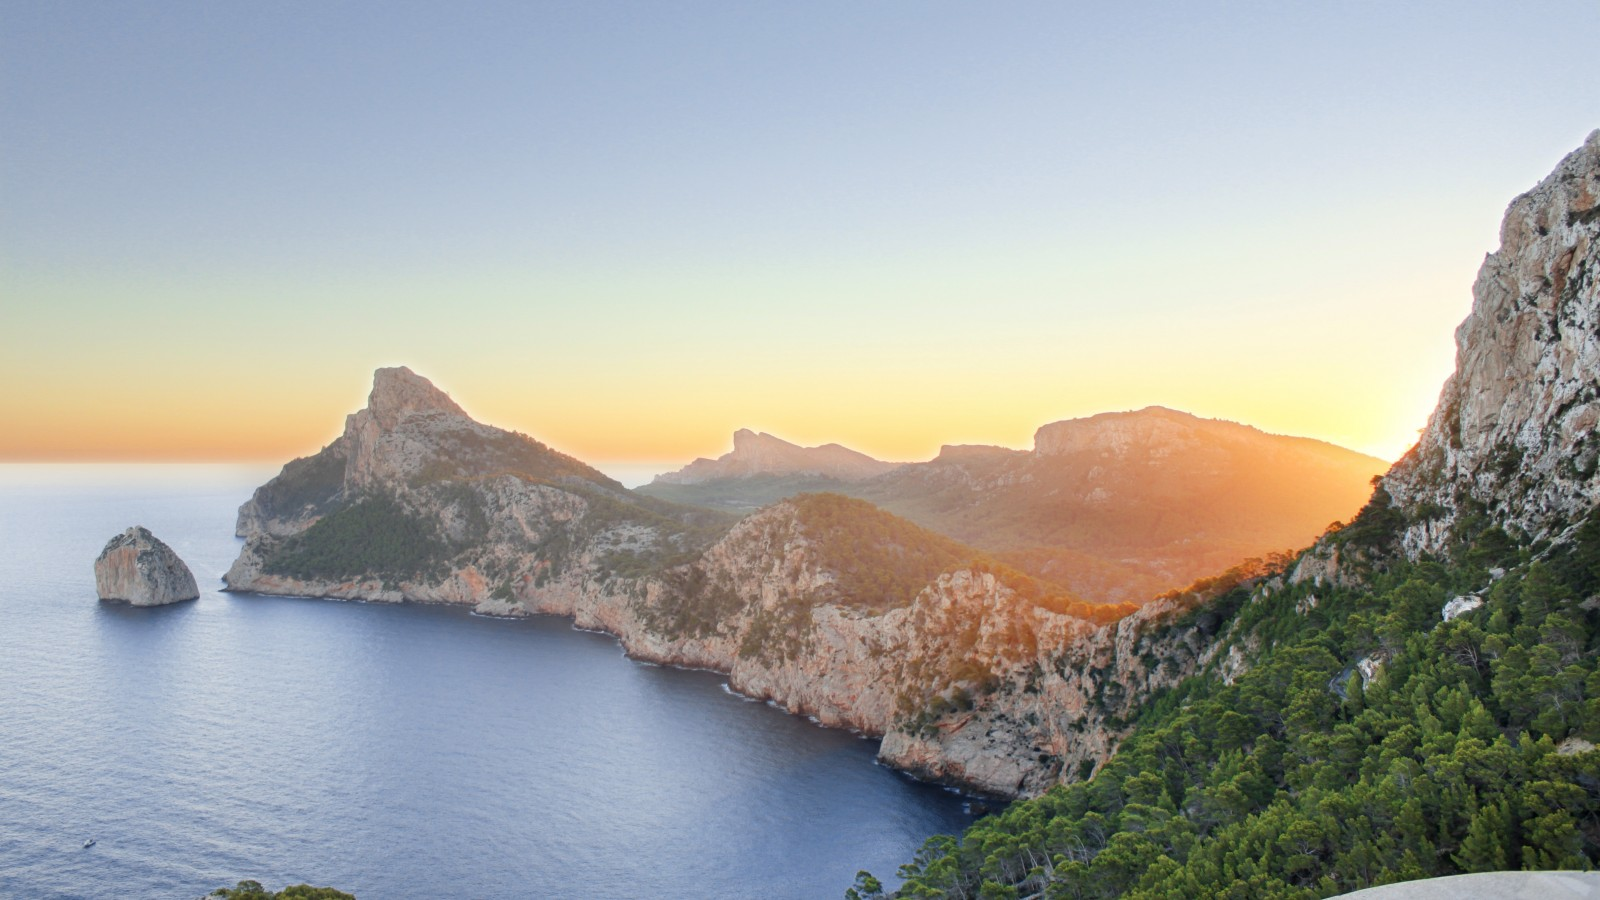 Cap de Formentor in the Spanish Balearic Islands